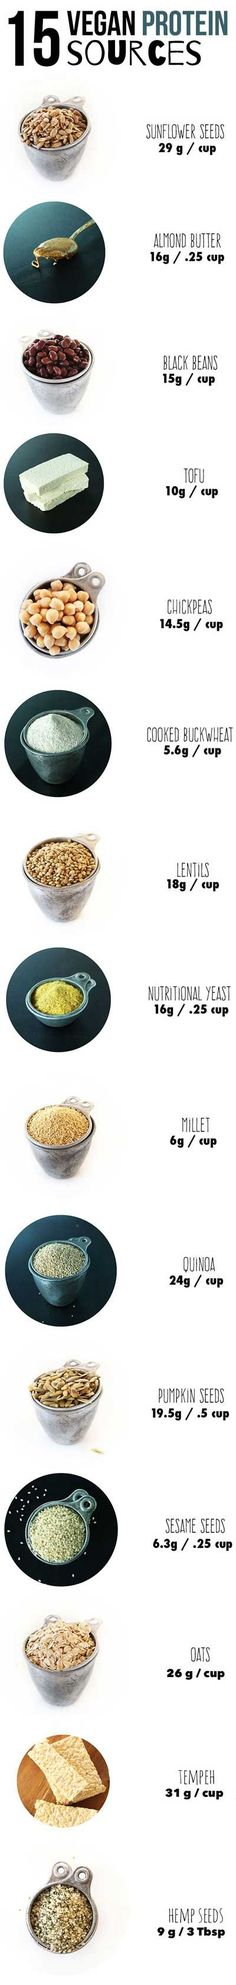 Sunflower seeds are a fantastic source of protein | Posted by: customweightlossprogram.com